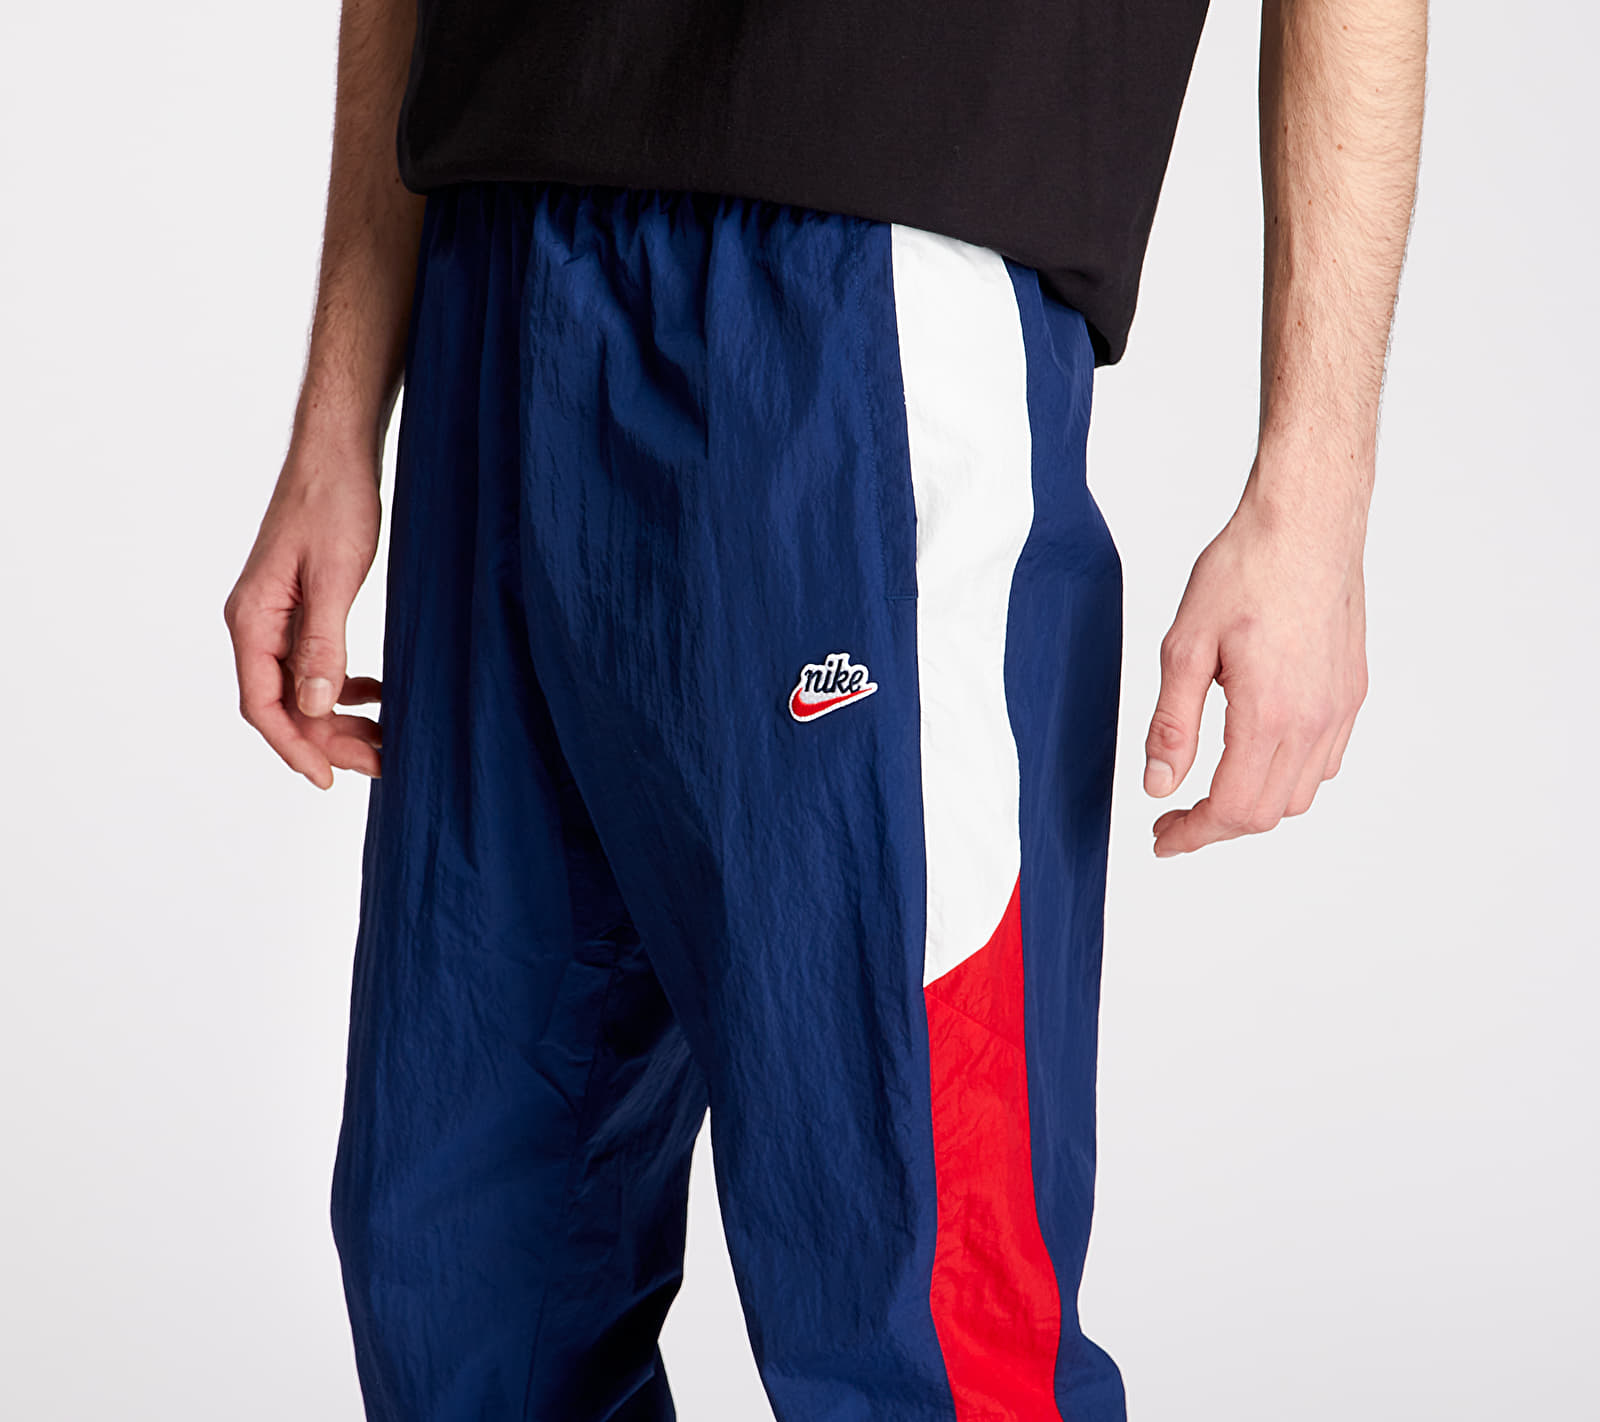 Nike Sportswear HE Wr Woven Signature Pants Blue Void/ University Red/ Summit White